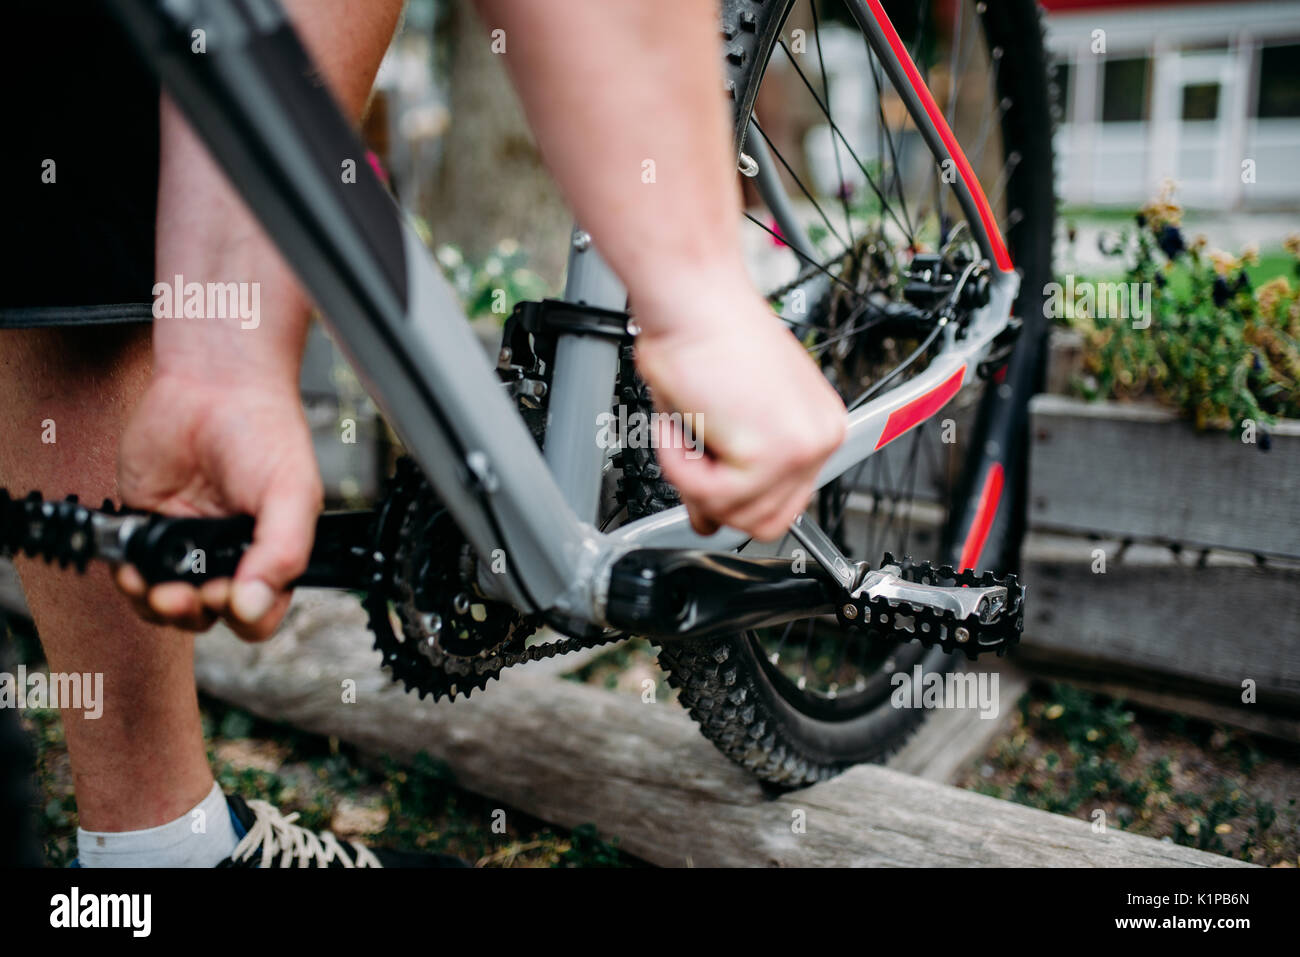 Bicycle mechanic hands adjusts with service tools cycling pedals. Cycle workshop outdoor. Bicycling sport, repairman - Stock Image